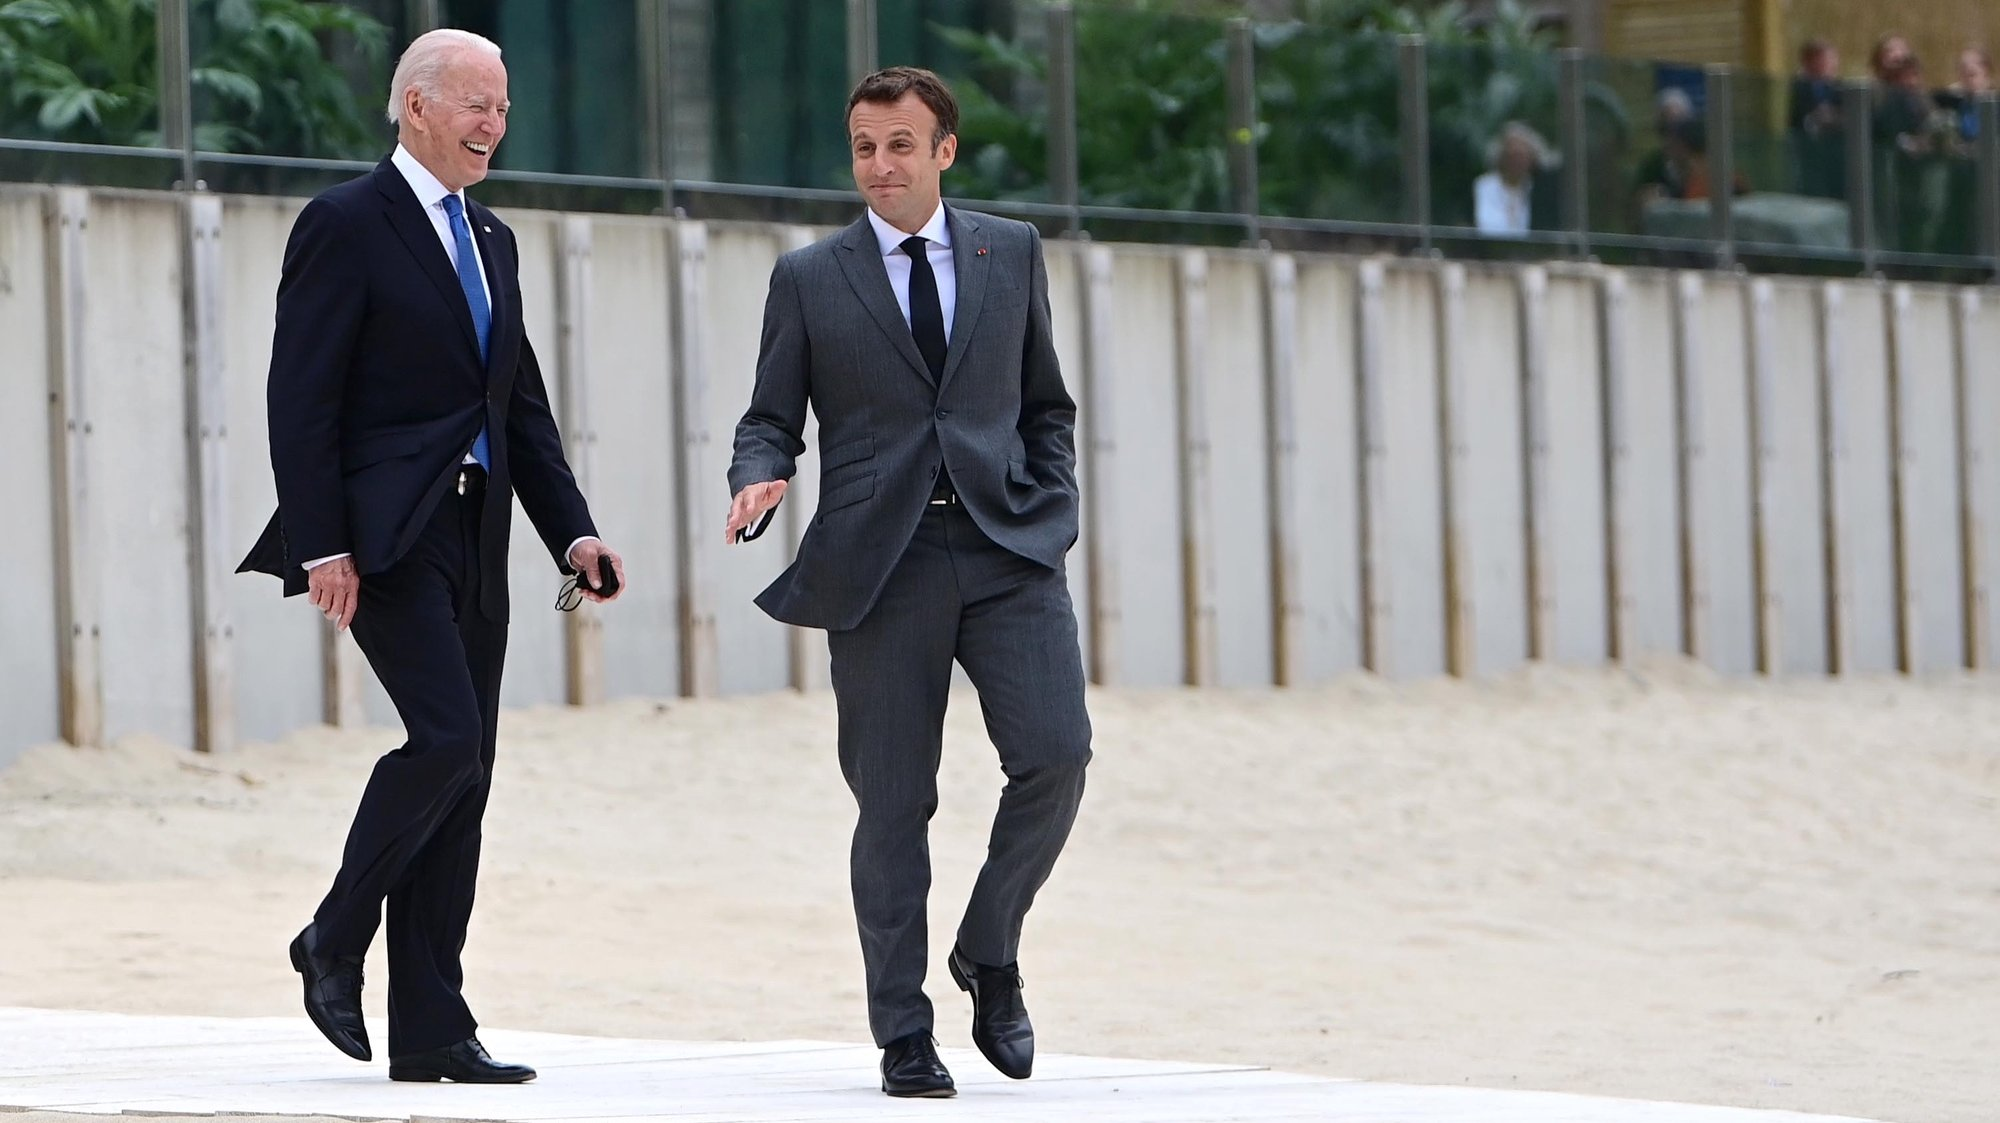 epa09262534 US President Joe Biden (L) and France's President Emmanuel Macron (R) arrive at the family photo during the G7 Summit in Carbis Bay, Britain, 11 June 2021. Britain hosts the Group of Seven (G7) summit in Cornwall from 11 to 13 June 2021.  EPA/NEIL HALL/POOL